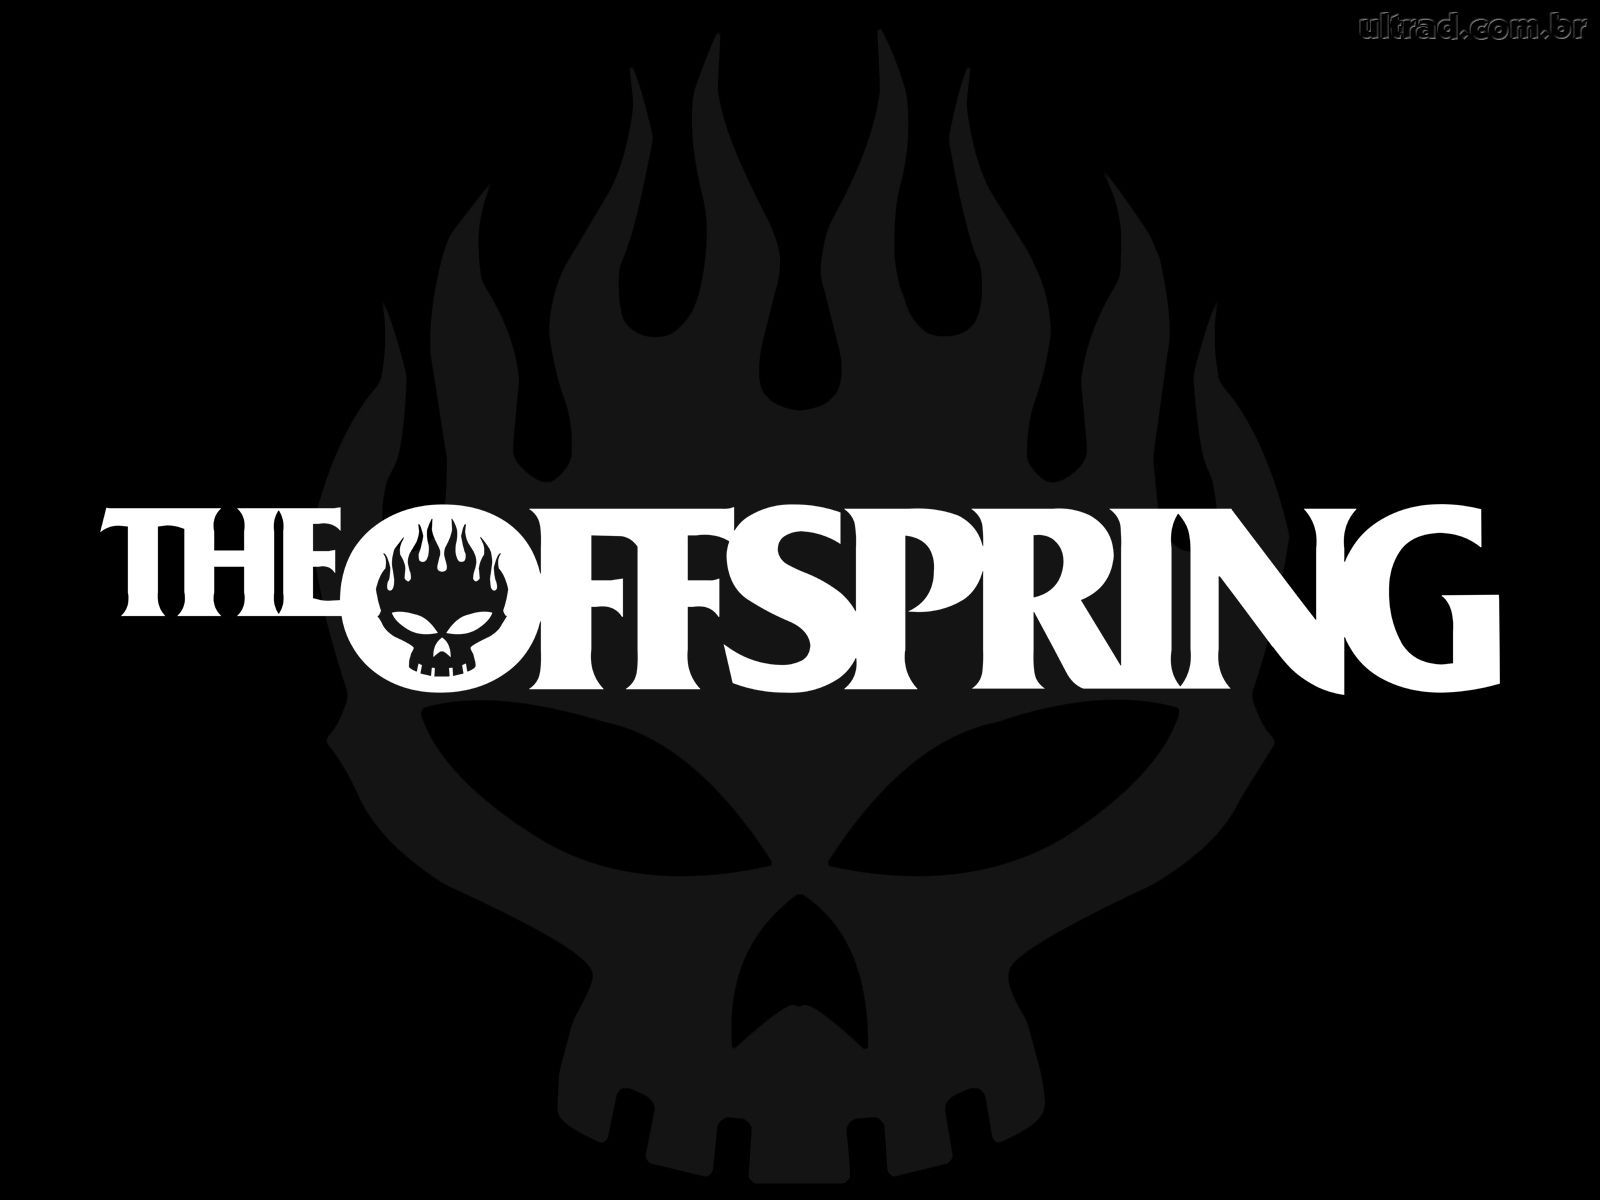 The Offspring Is My Favorite Music Group And Their Songs Are Extremely Good Musica Bandas Vida